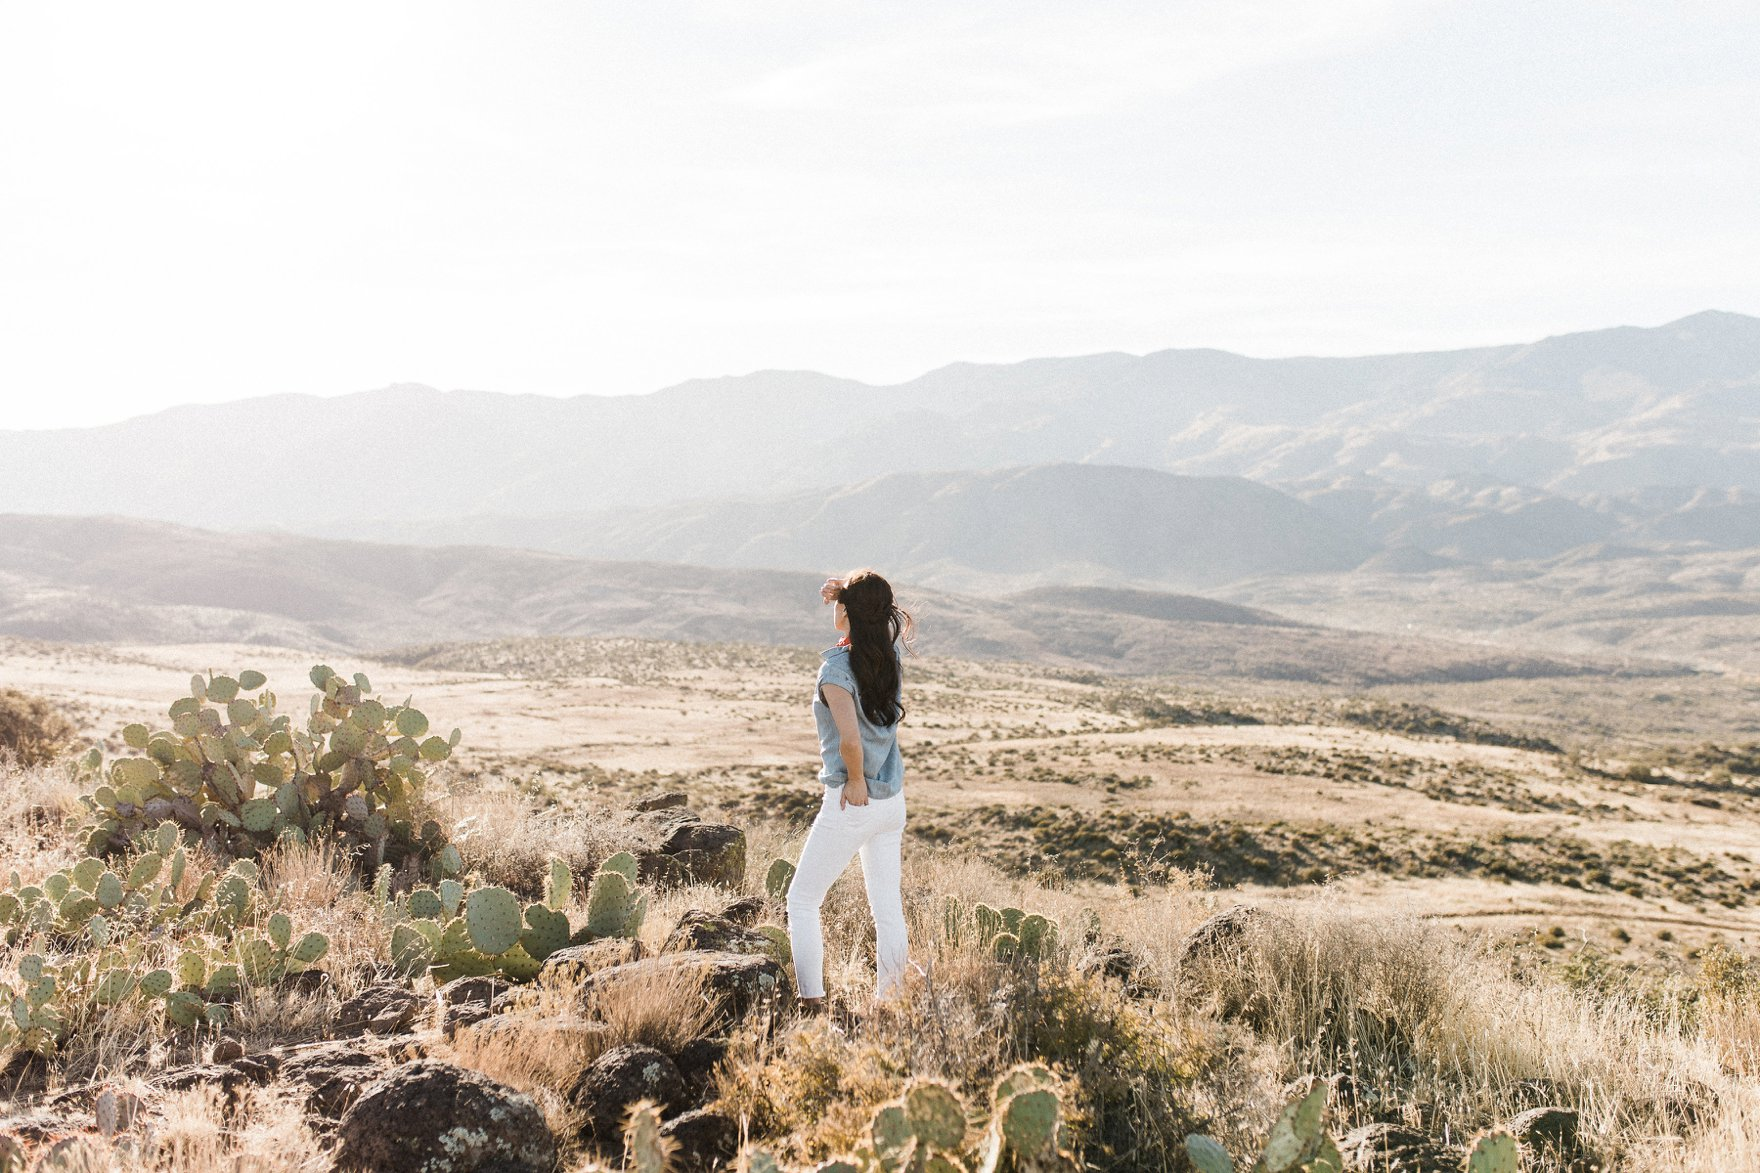 chambray short sleeved shirt white jeans with booties in tall dry grass in the arizona phoenix desert wearing looking out at the landscape explorer traveler